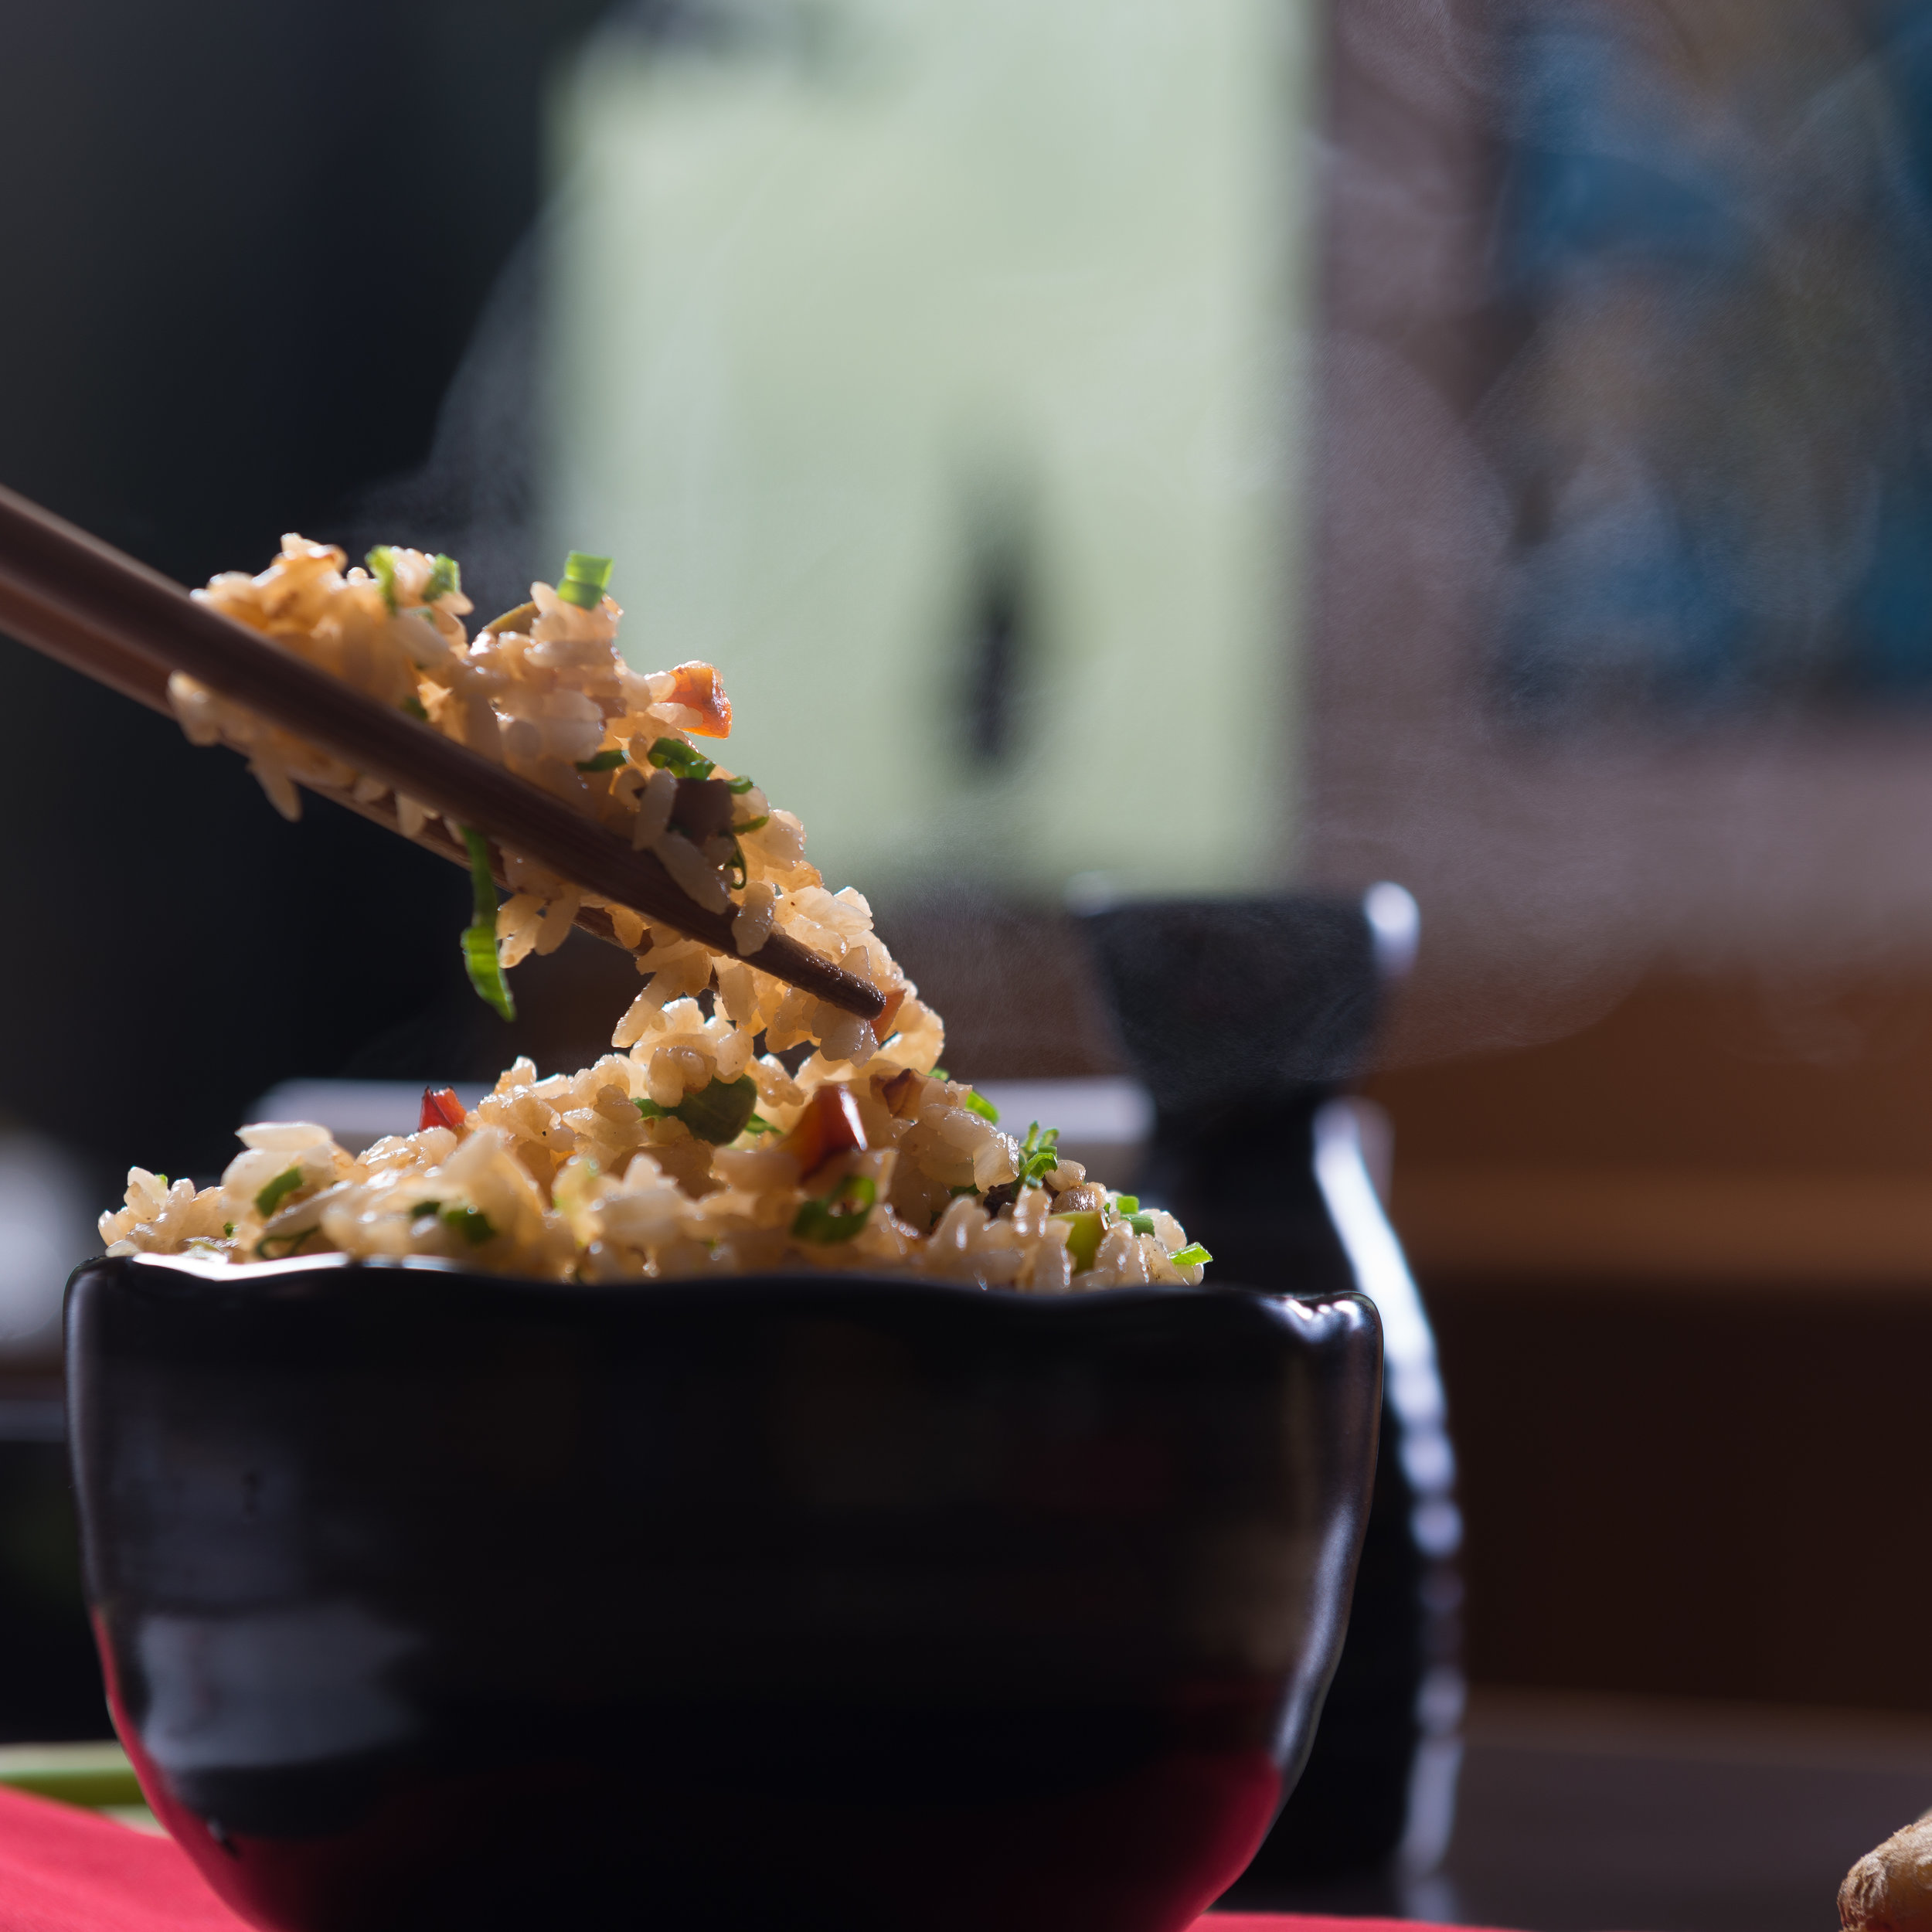 This easy fried rice recipe can be customized with different vegetables depending on what is in season.